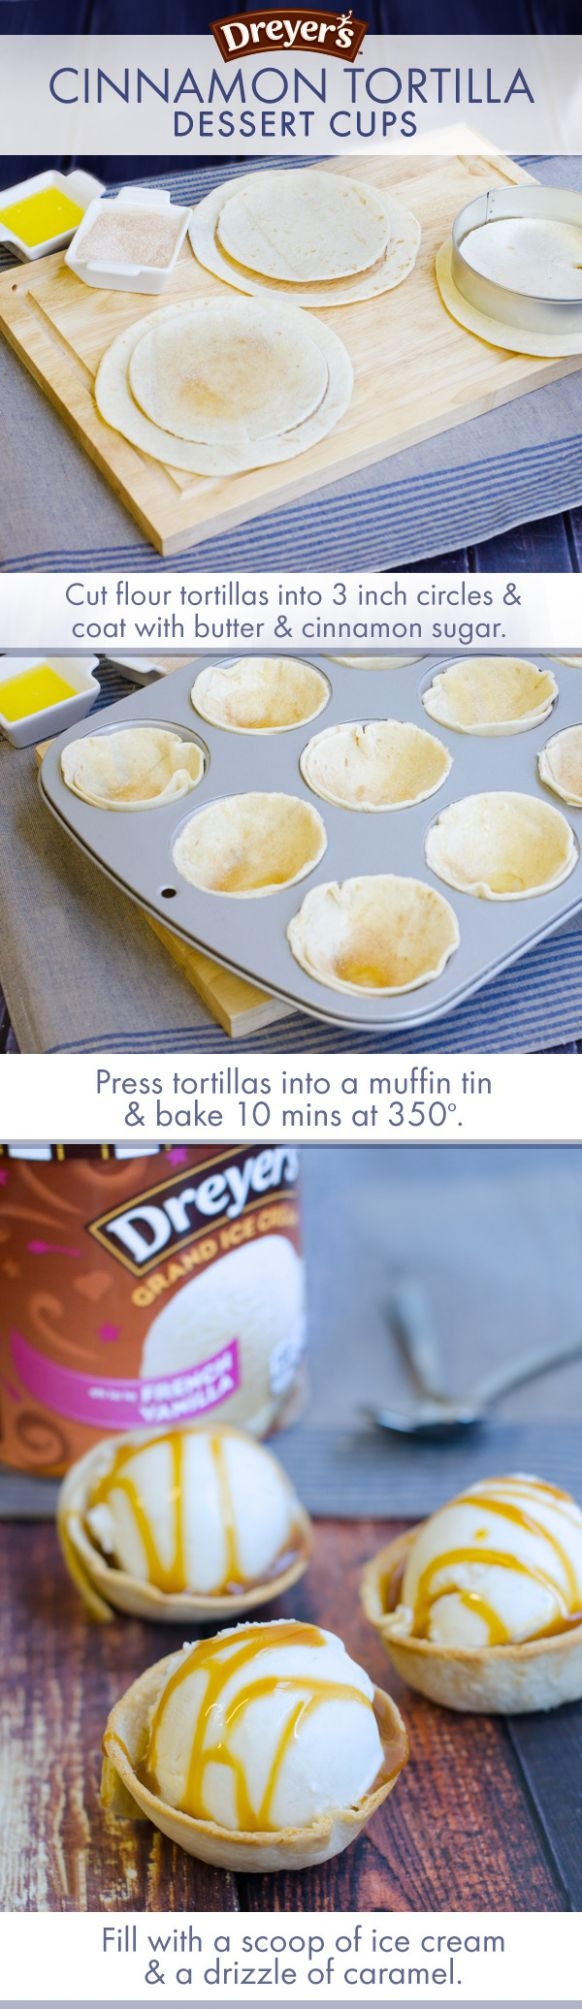 Dreyer's Cinnamon-Tortilla Dessert Cups